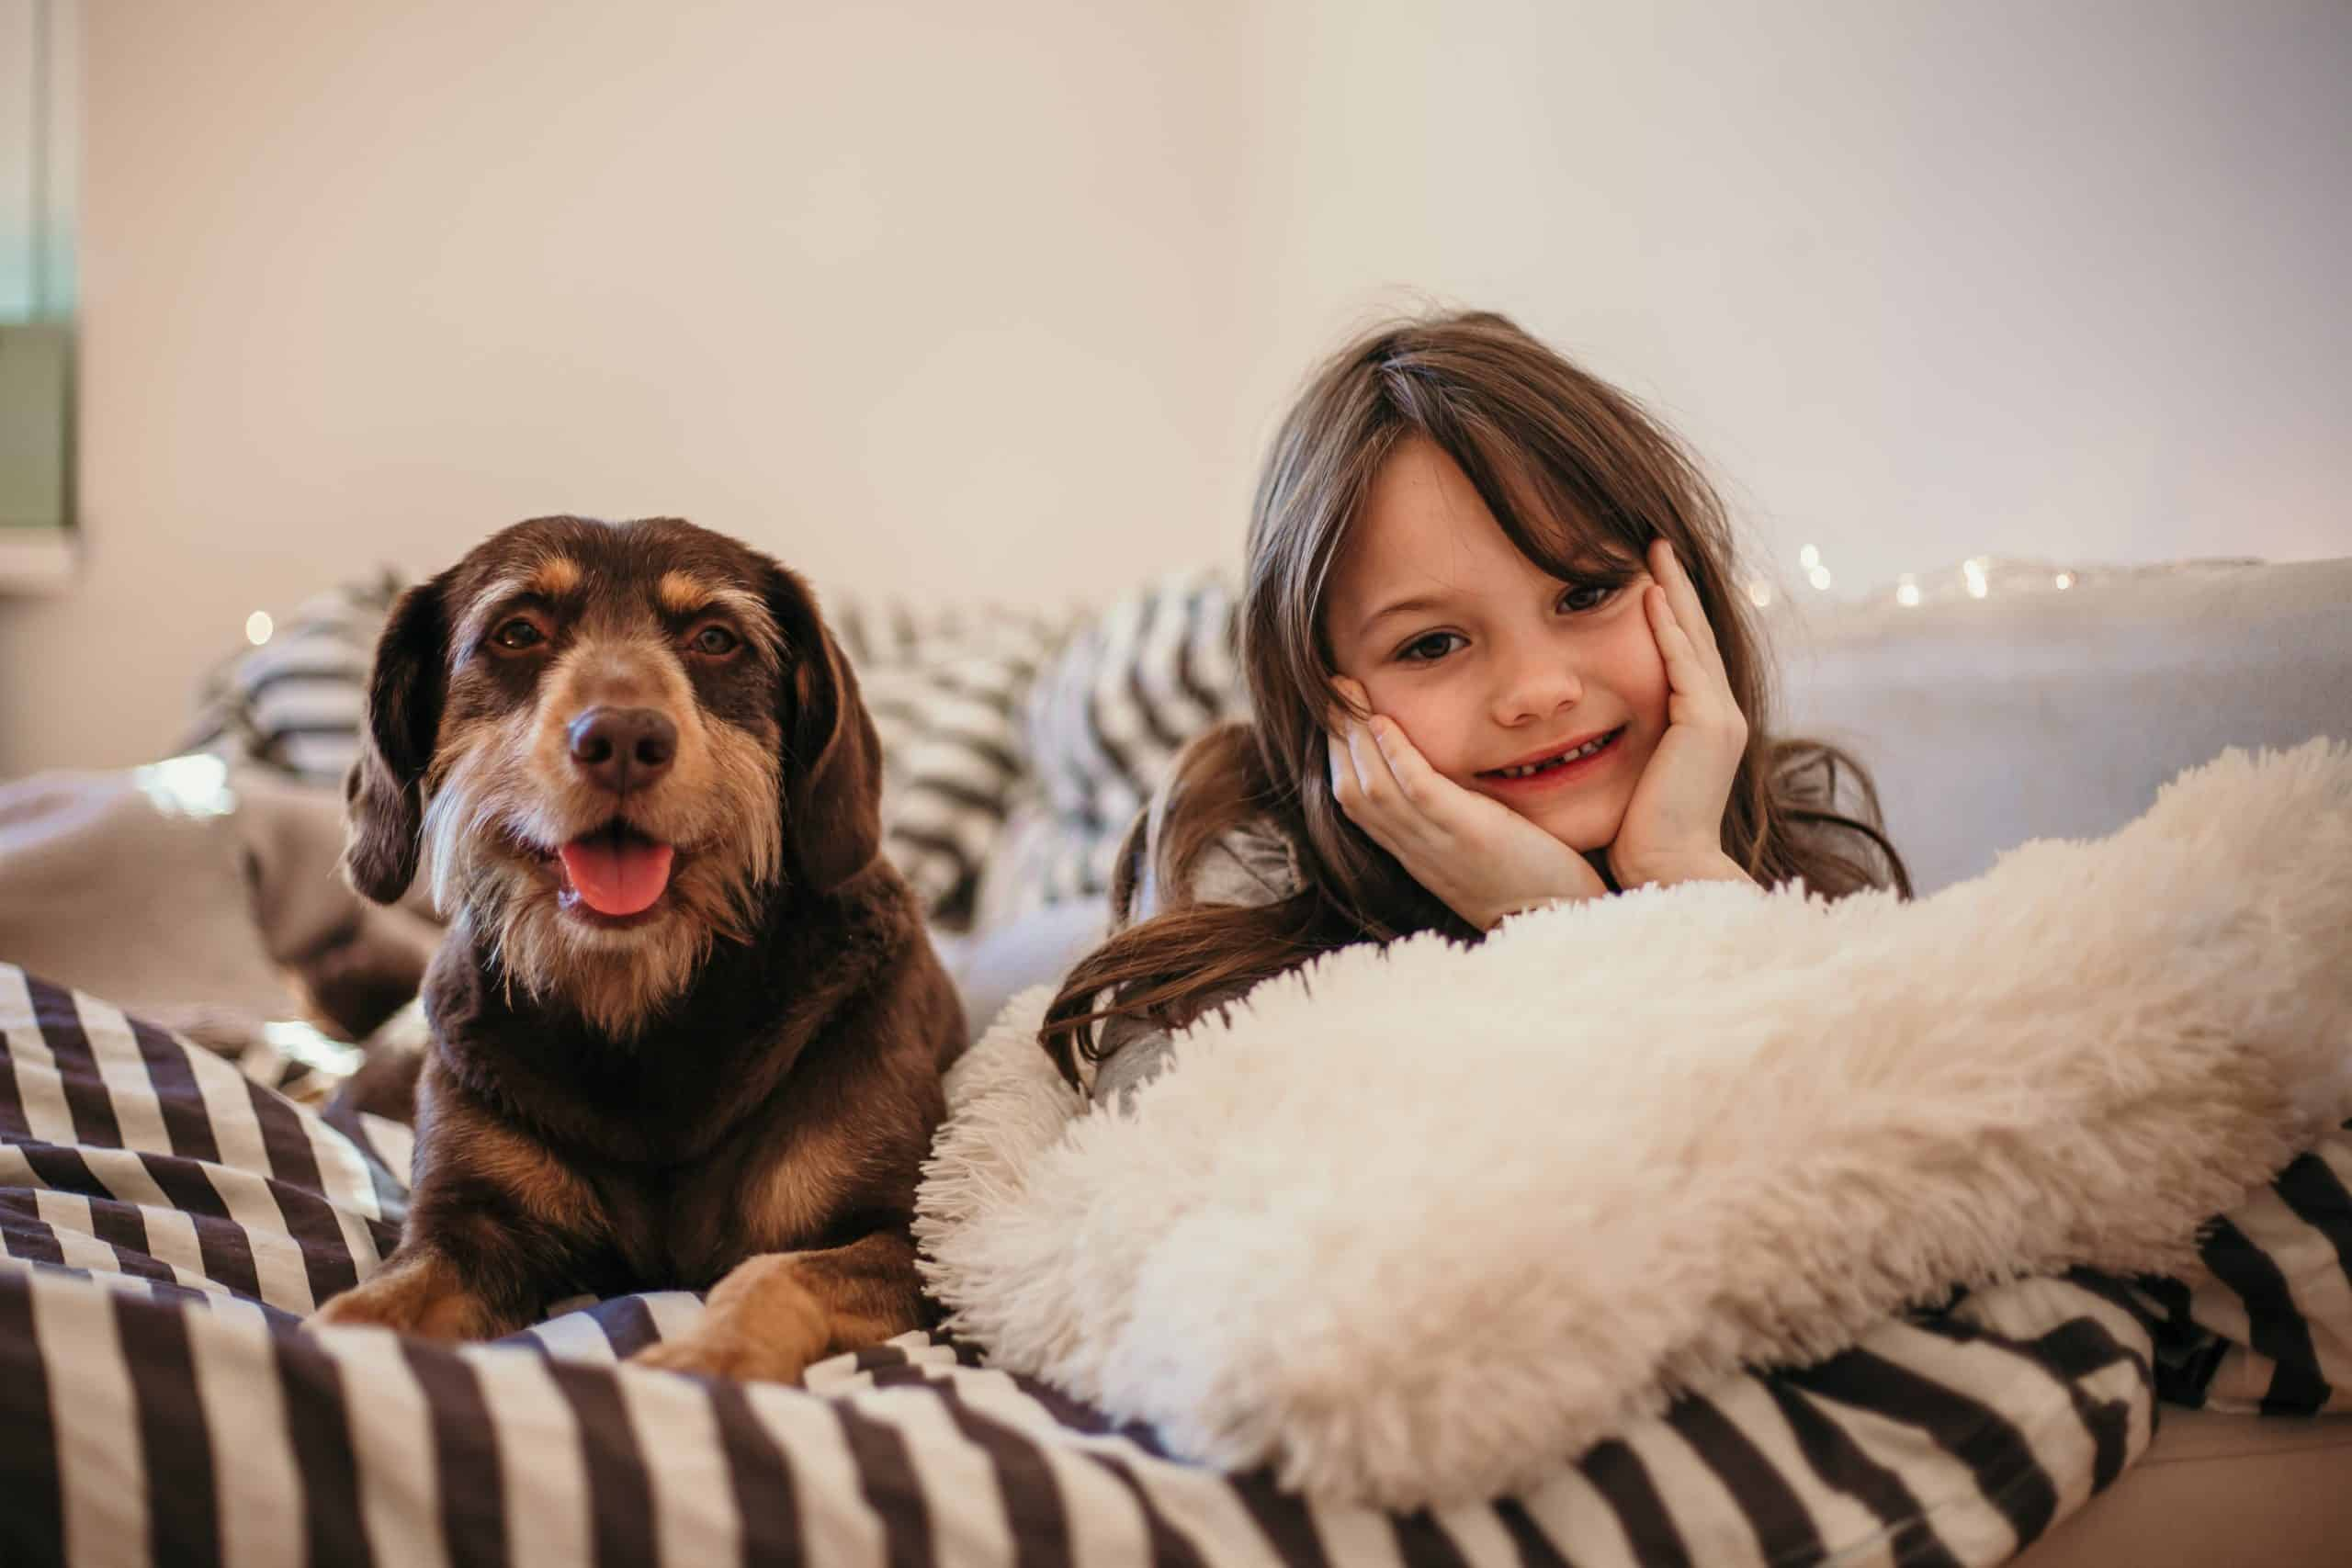 Mutt snuggles on bed with little girl. DNA testing reveals your dog's breed. If your pet is a mutt, you'll likely have more than one, perhaps several.